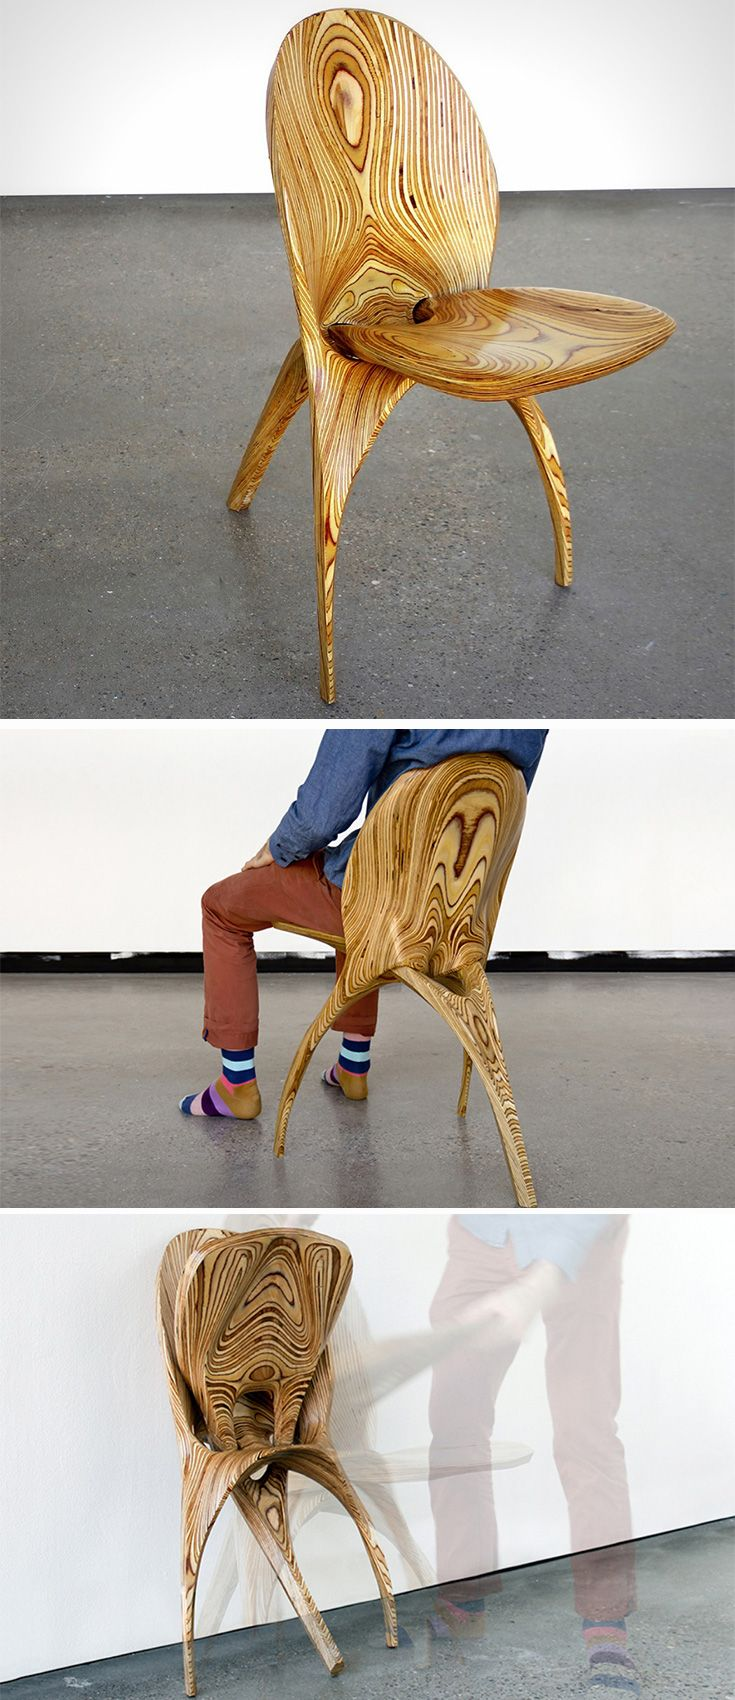 The Stratum chair has an unconventional form and is nothing like anything you've ever seen.